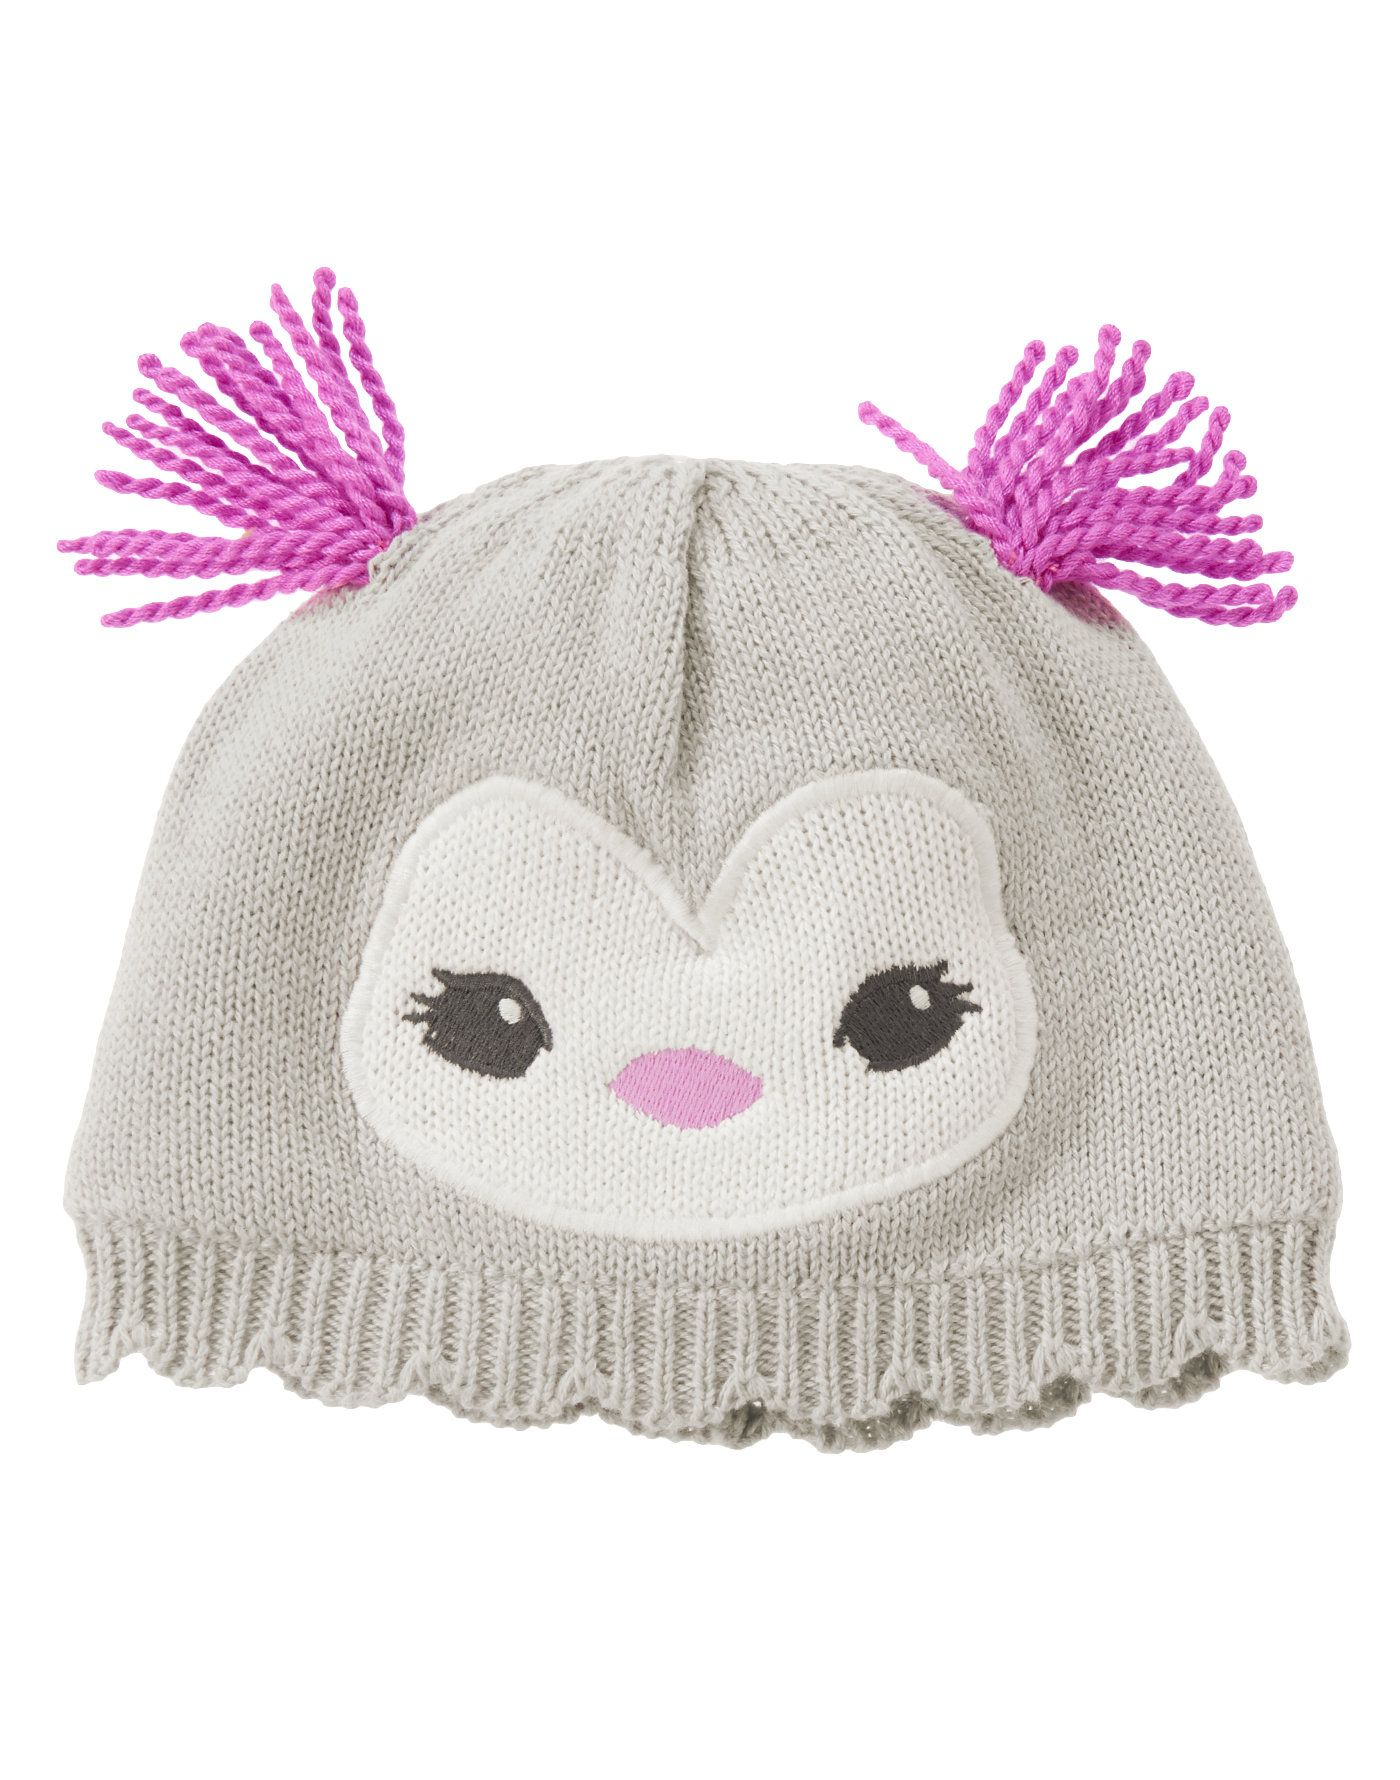 6445631f971 Penguin Pom-Pom Hat at Gymboree